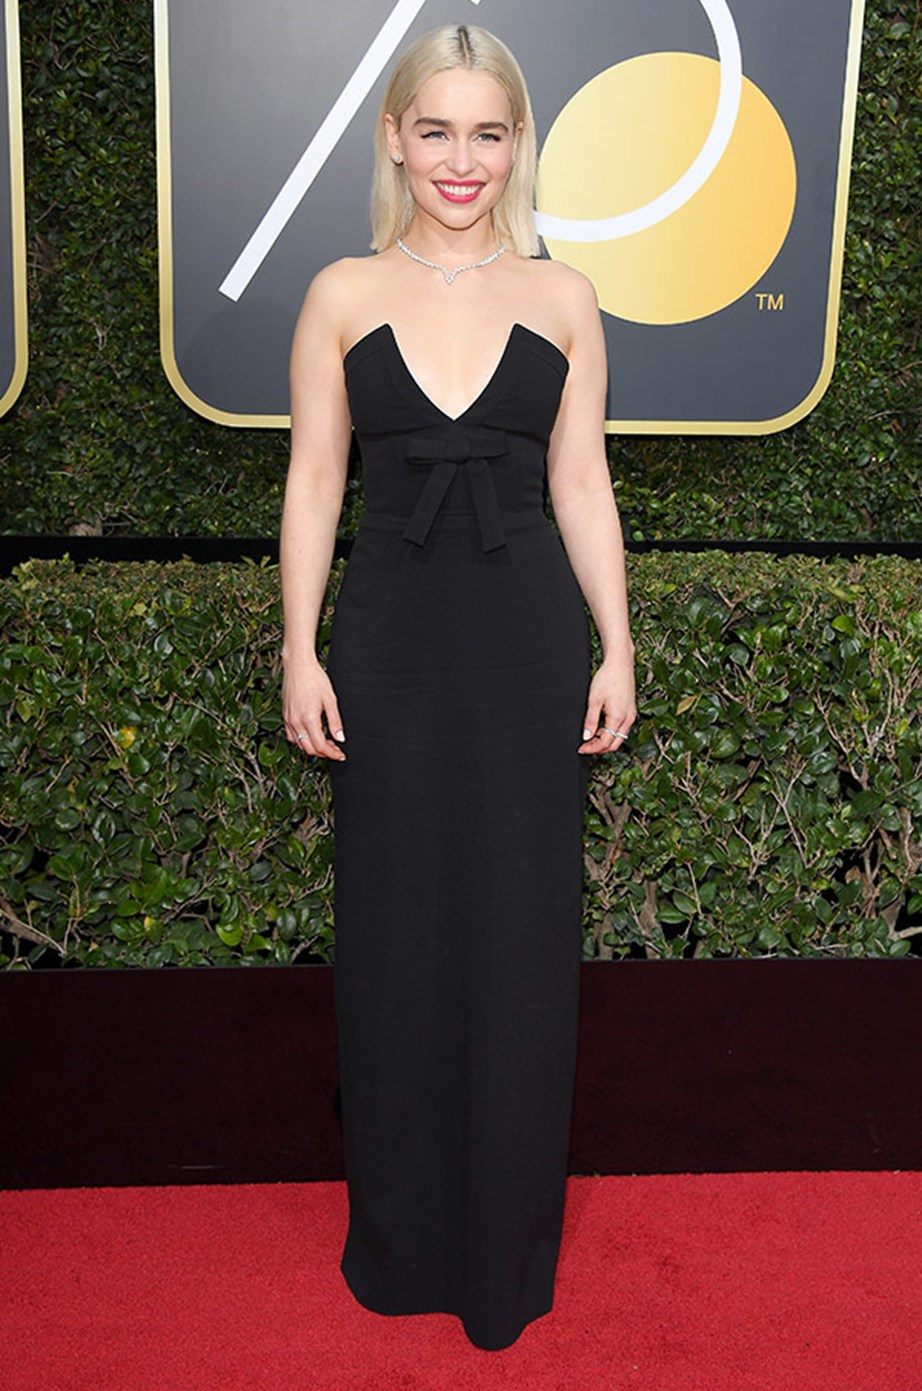 Emilia Clarke joined the celebrity masses in wearing black as a silent protest.